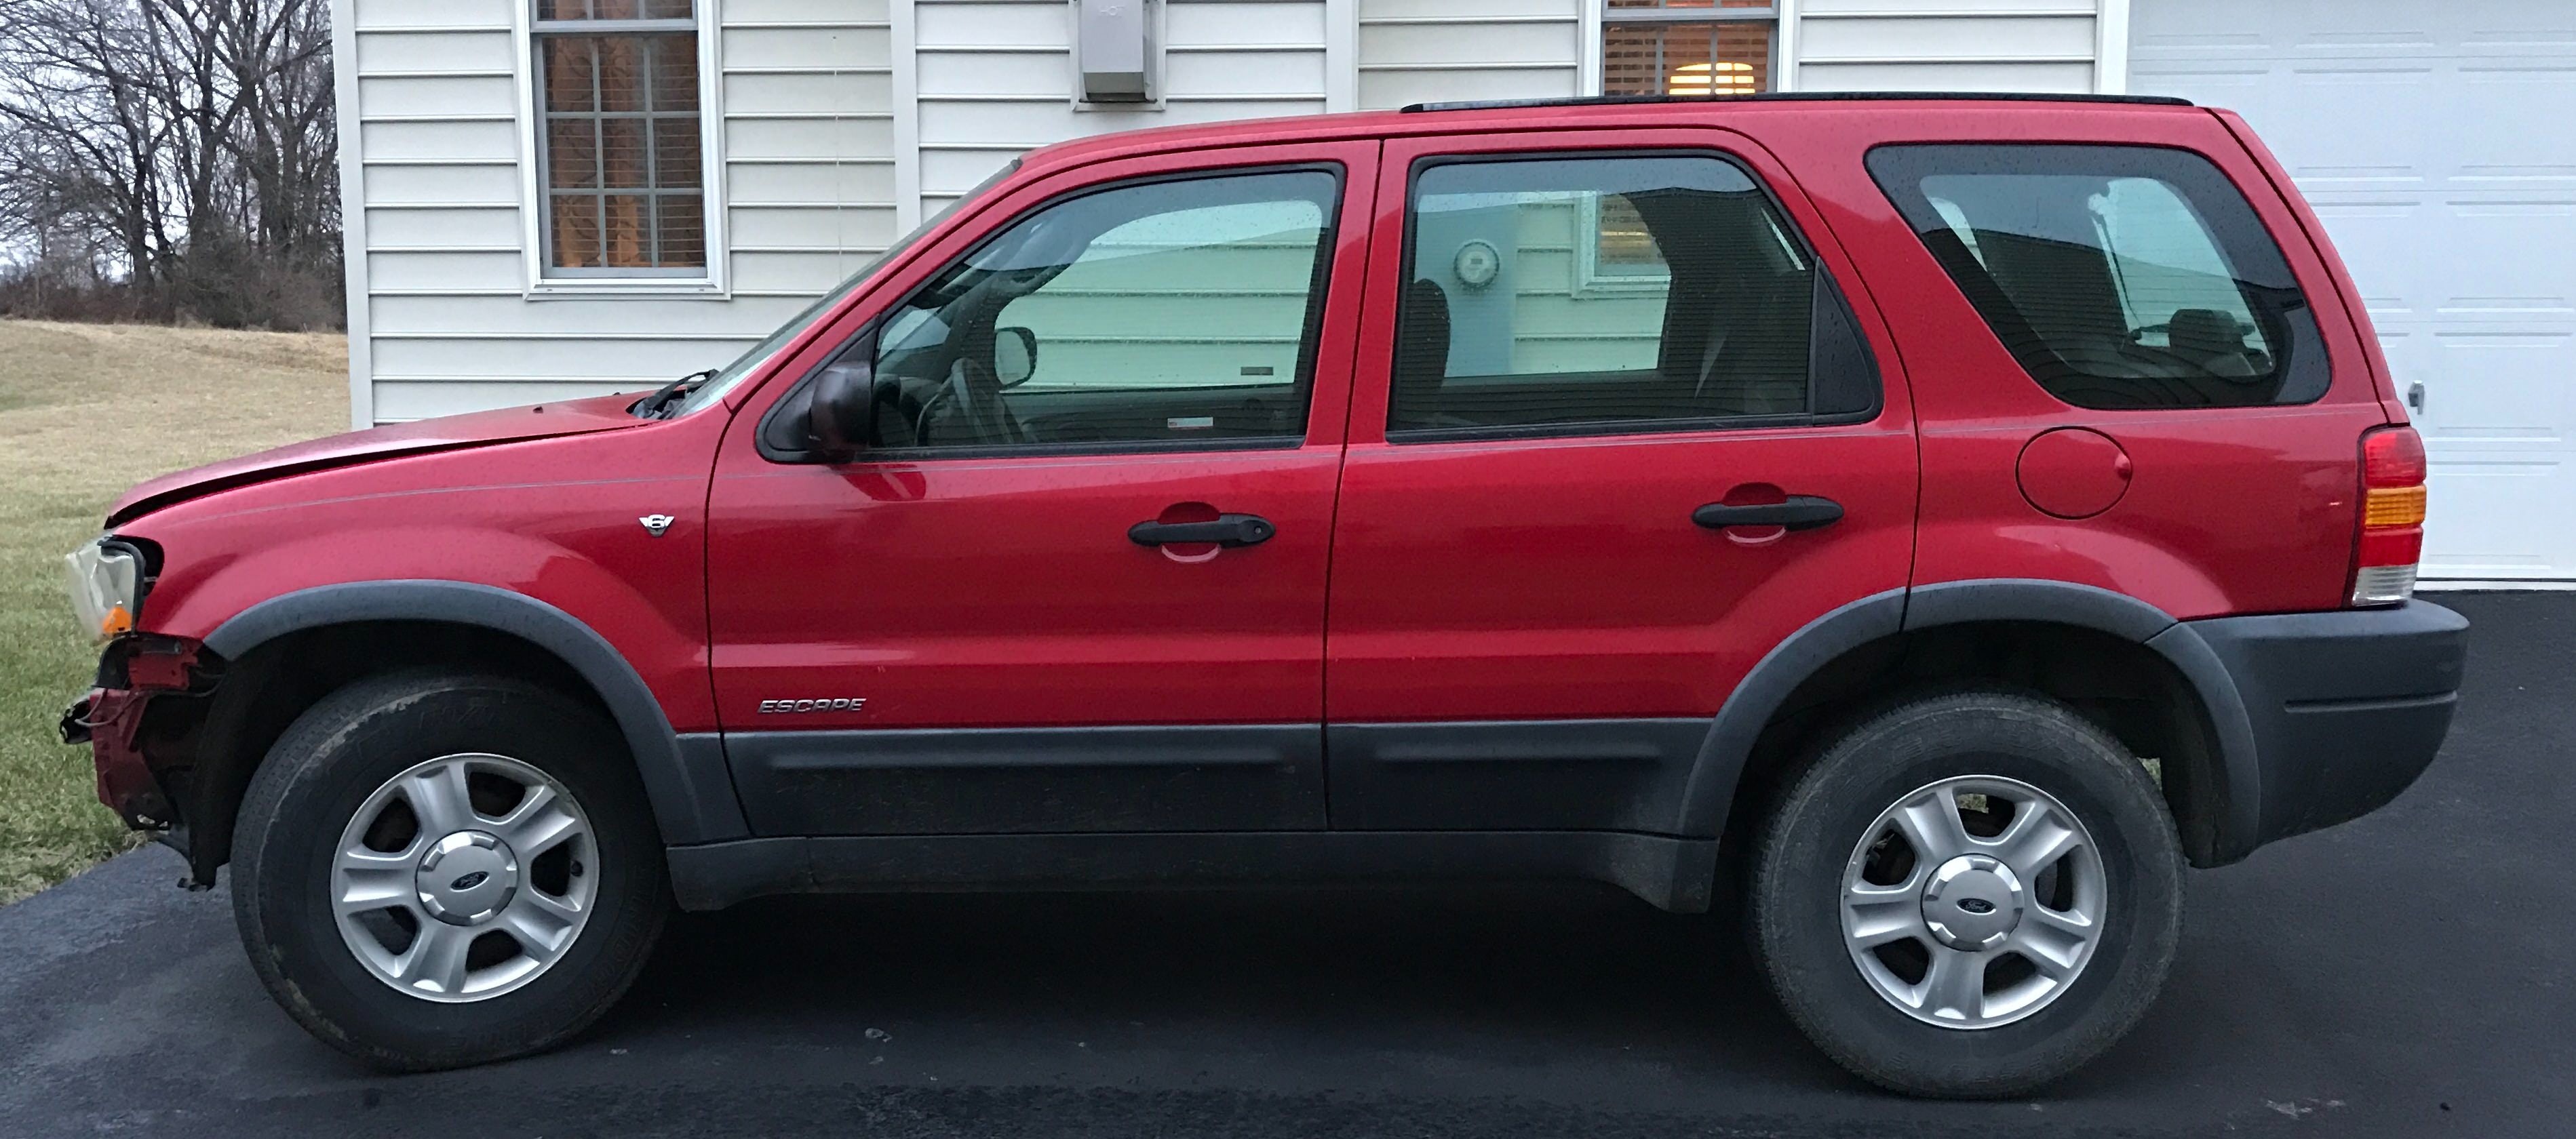 Junk 2001 Ford Escape in Purcellville